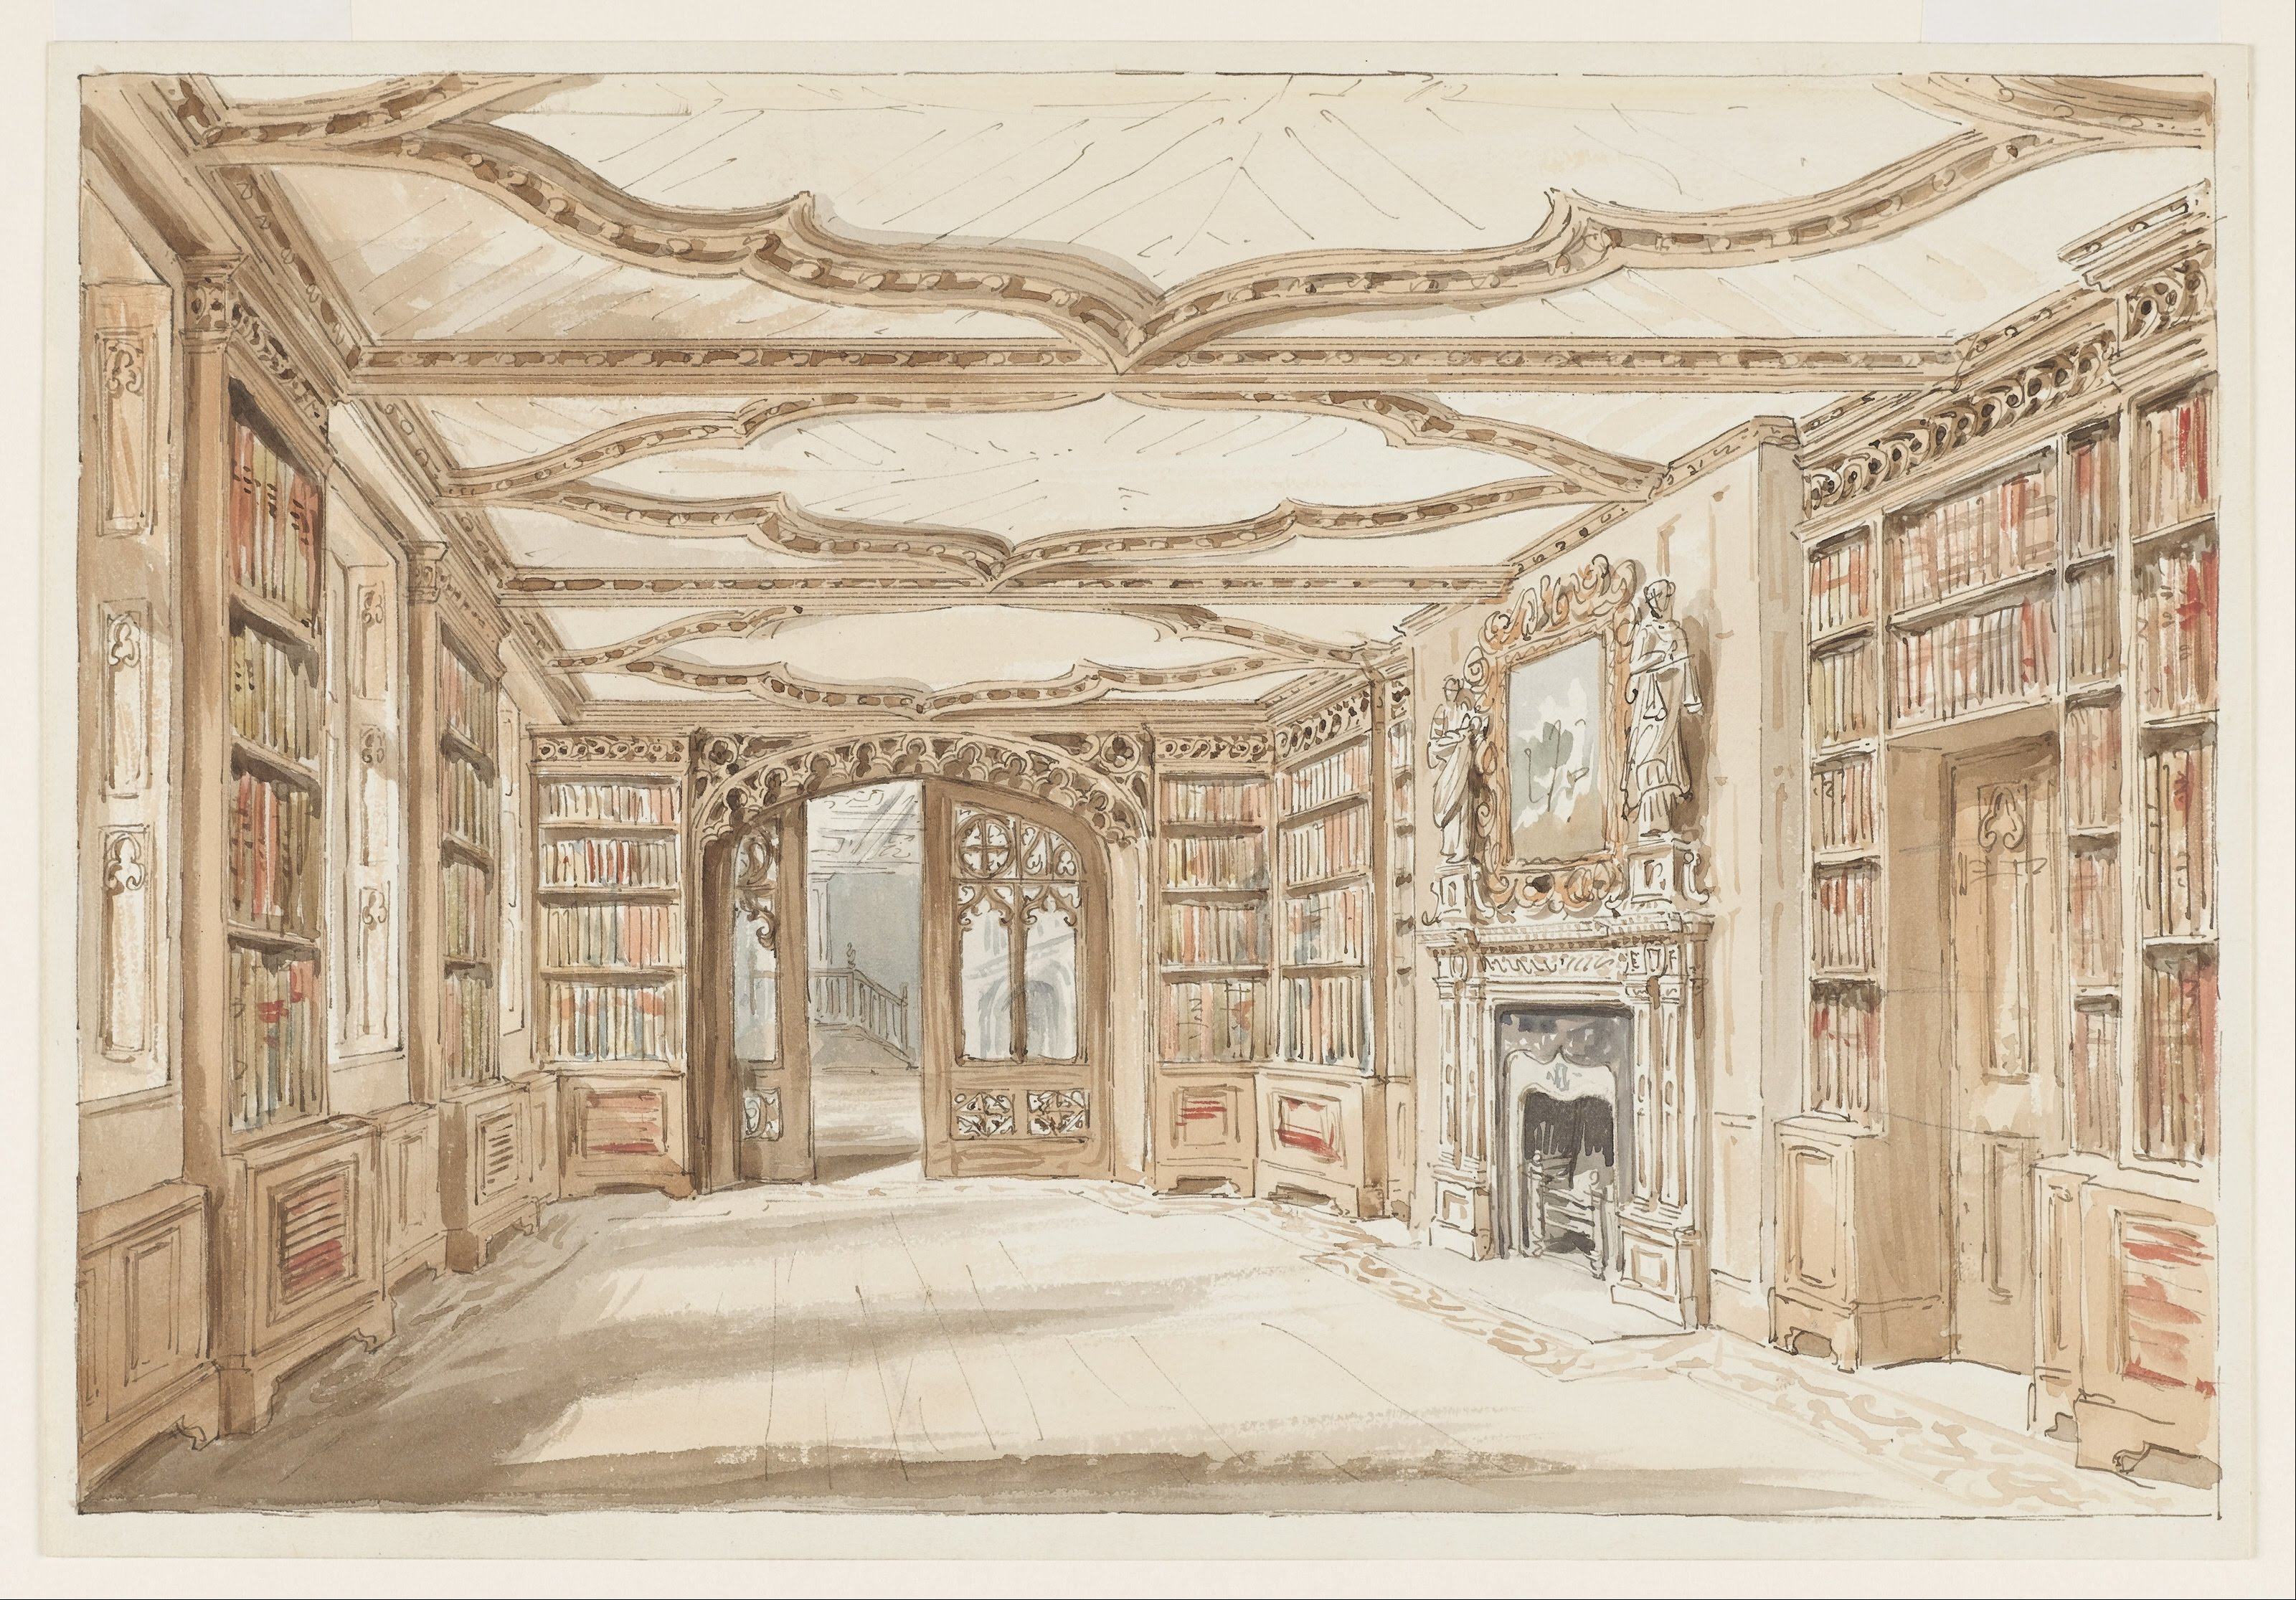 Gothic Style Interior file:charles james richardson - interior view of a library in